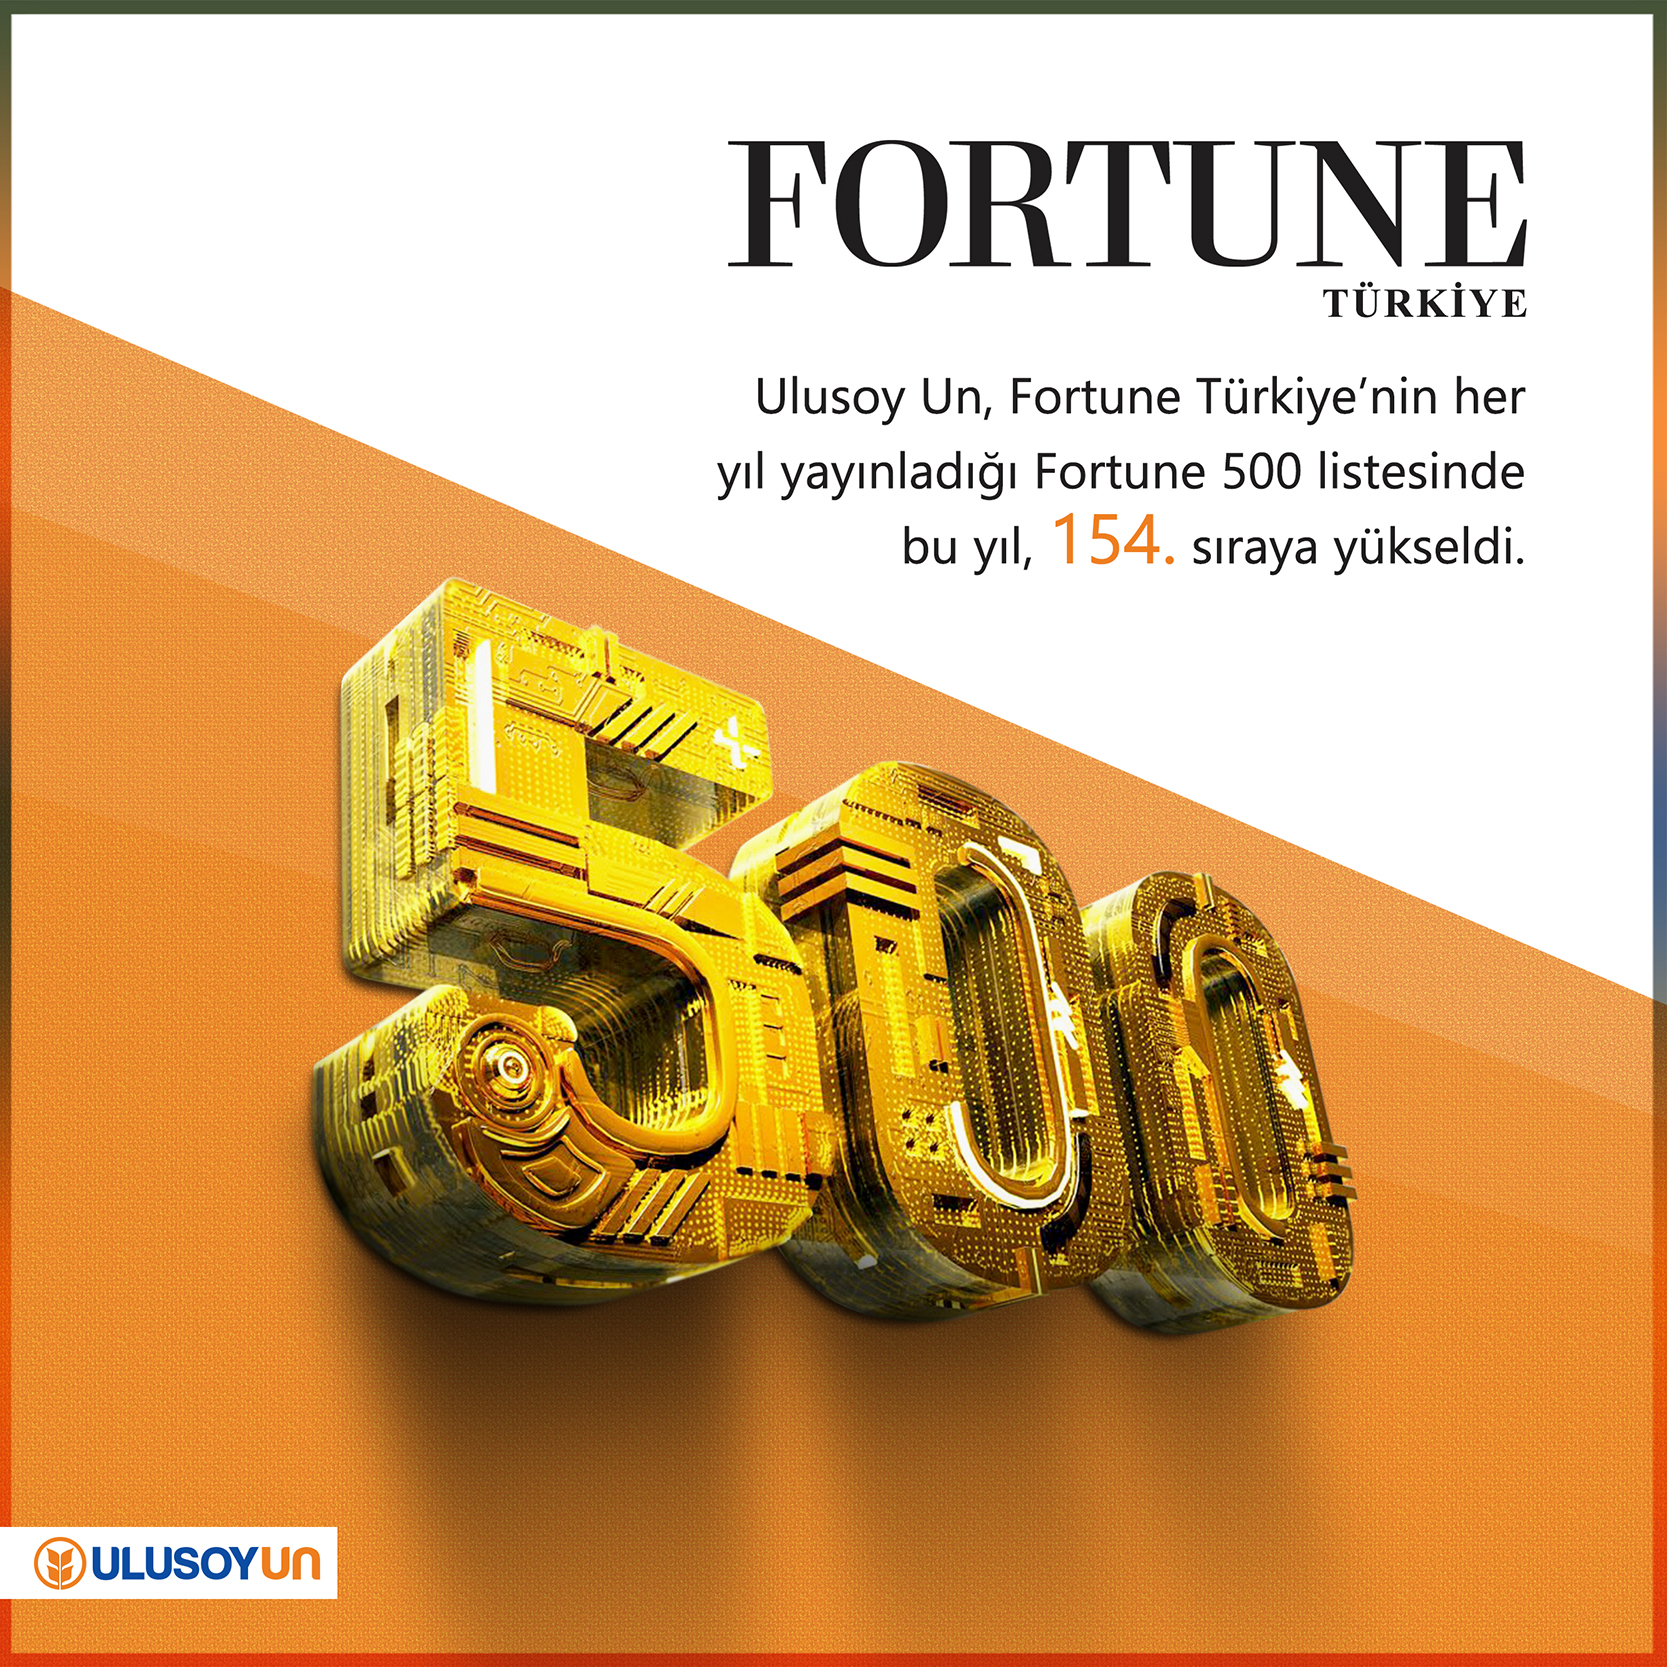 Fortune 2016, Ulusoy Un